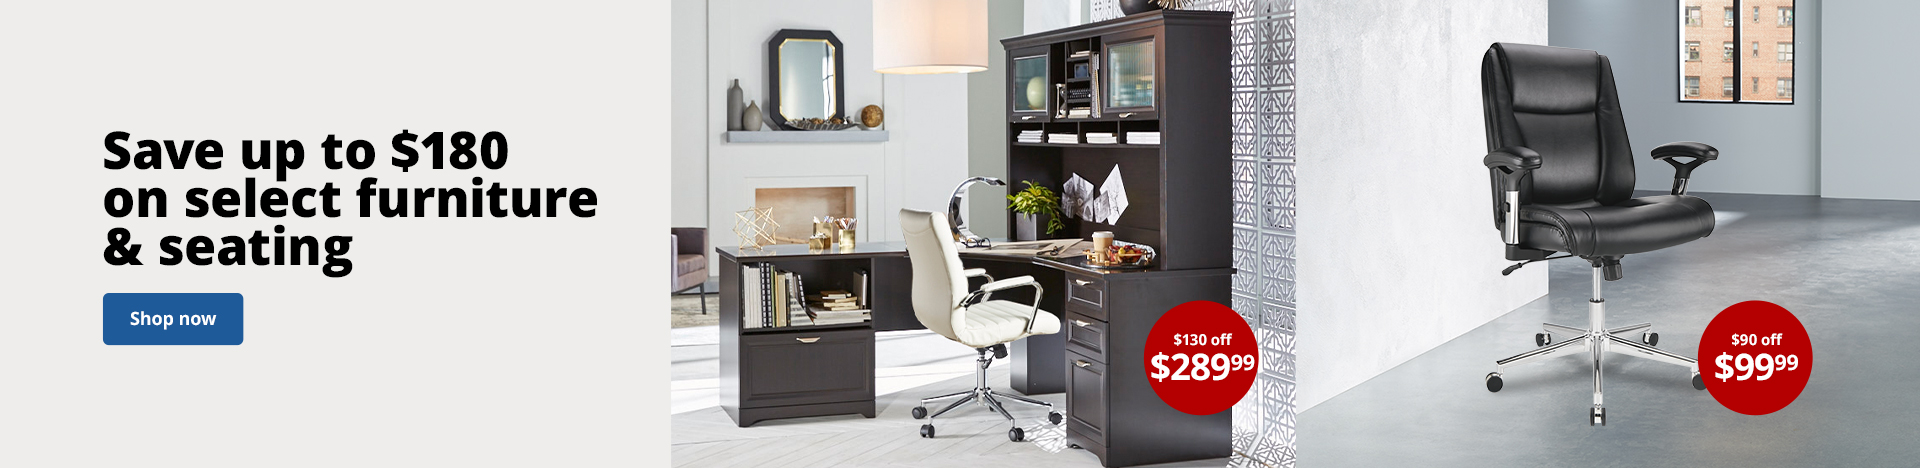 Save up to $180 on select furniture and seating